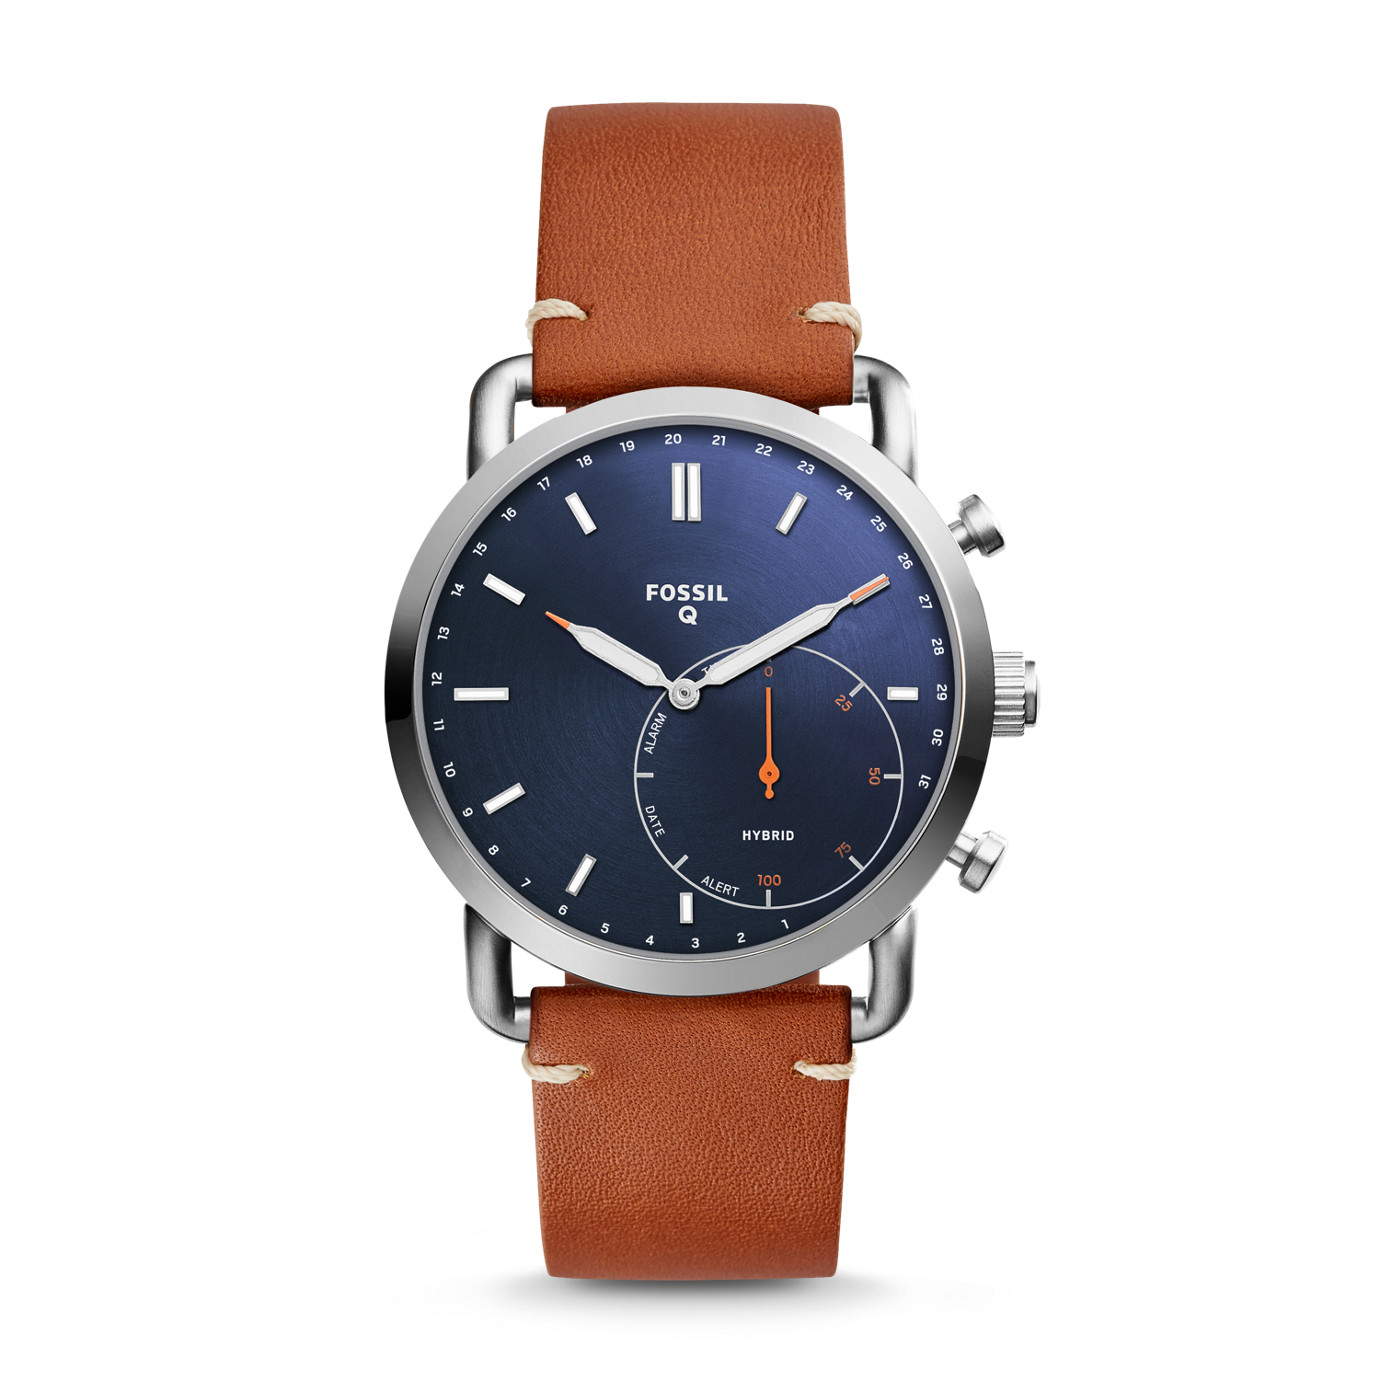 Hybrid Smartwatch - Q Commuter Luggage Leather